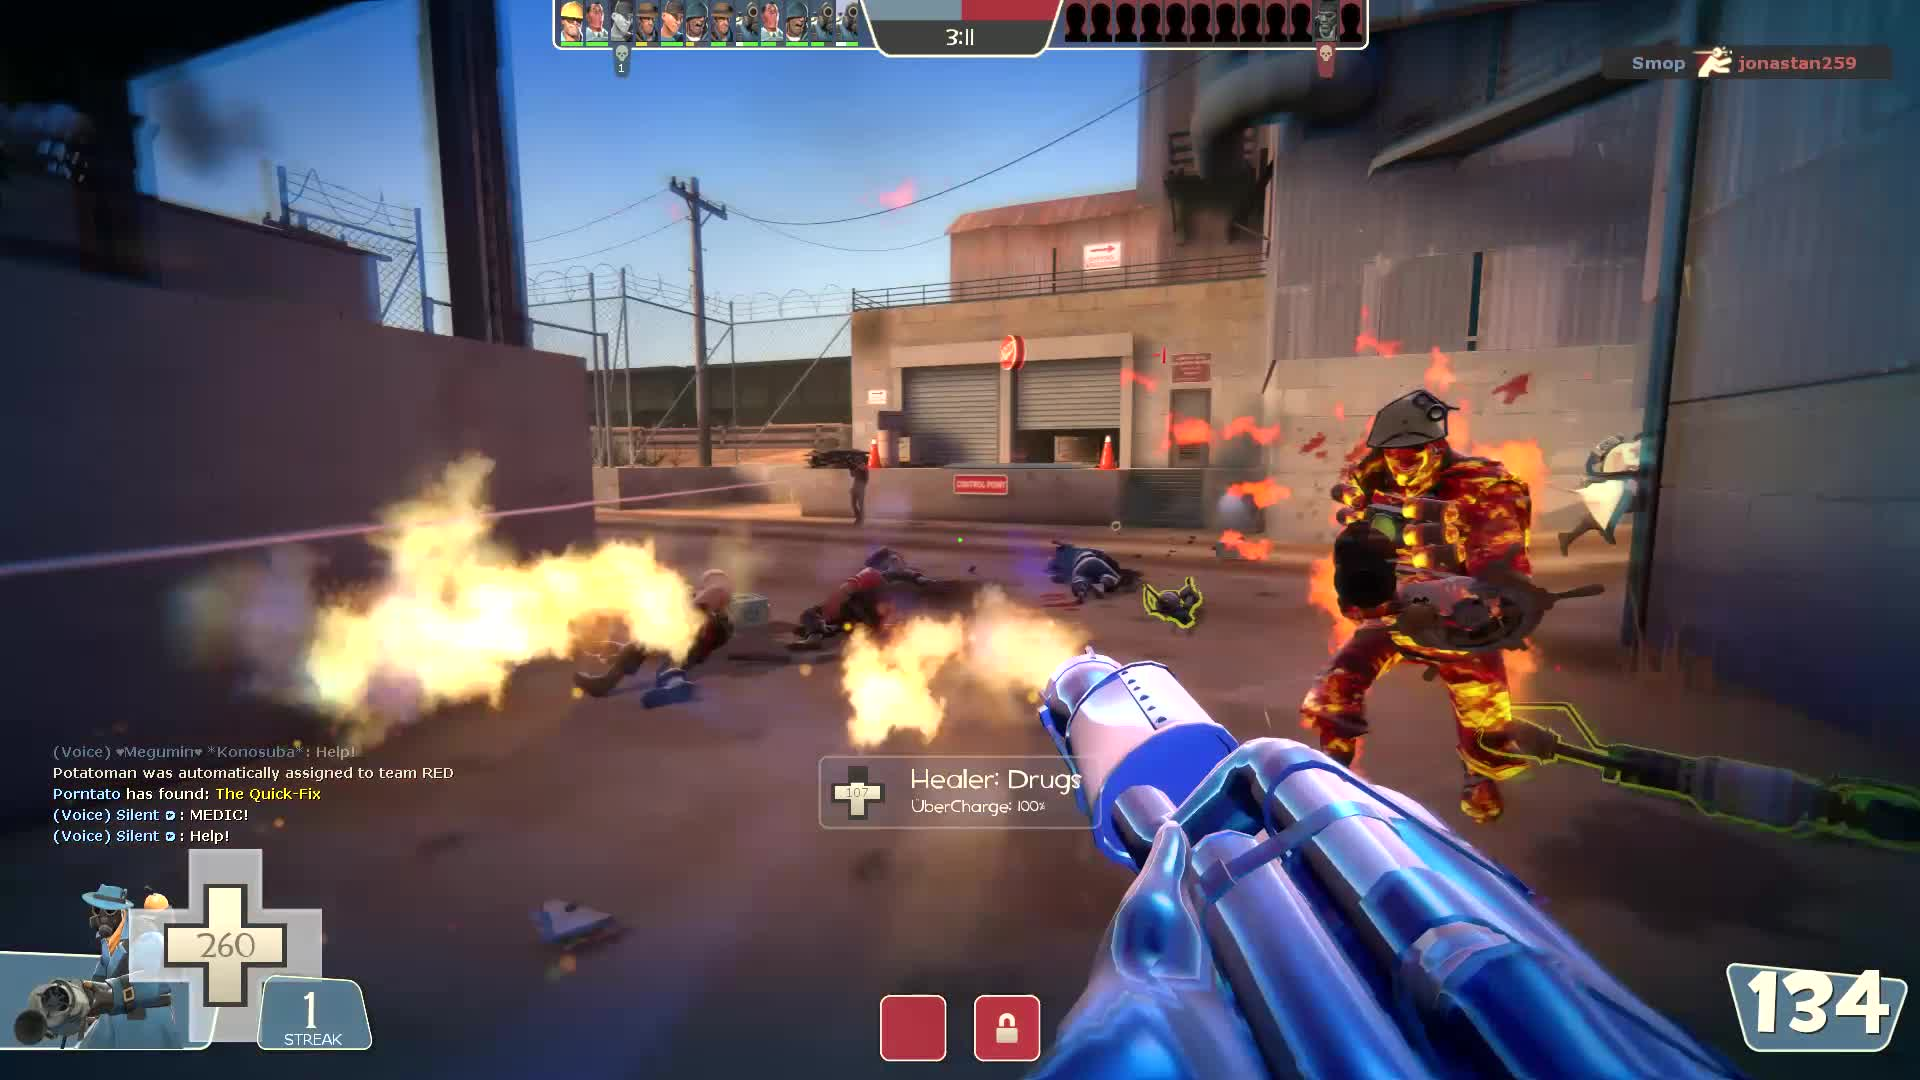 tf2, Another killstreak using mostly (but not exclusively) sentry rockets GIFs